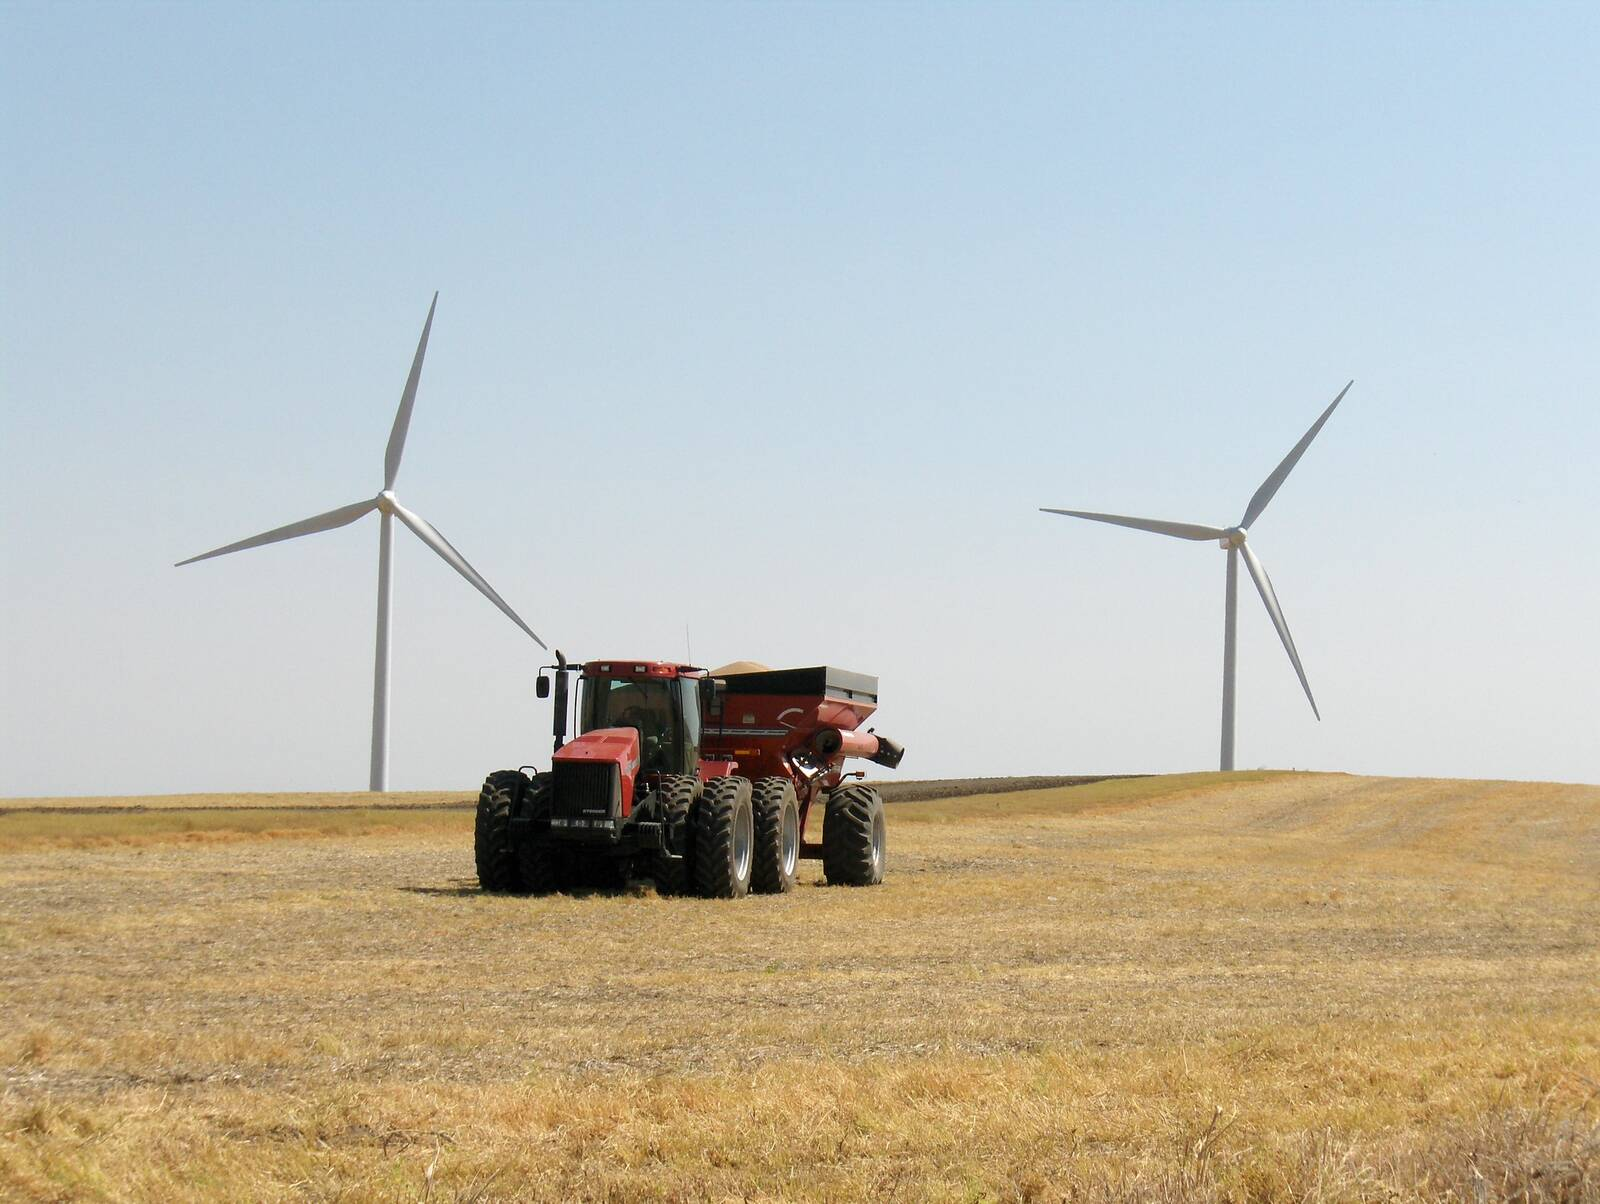 PacifiCorp provides lease payments to local landowners for use of their land for wind turbines. Credit: Pacific Power/Flickr